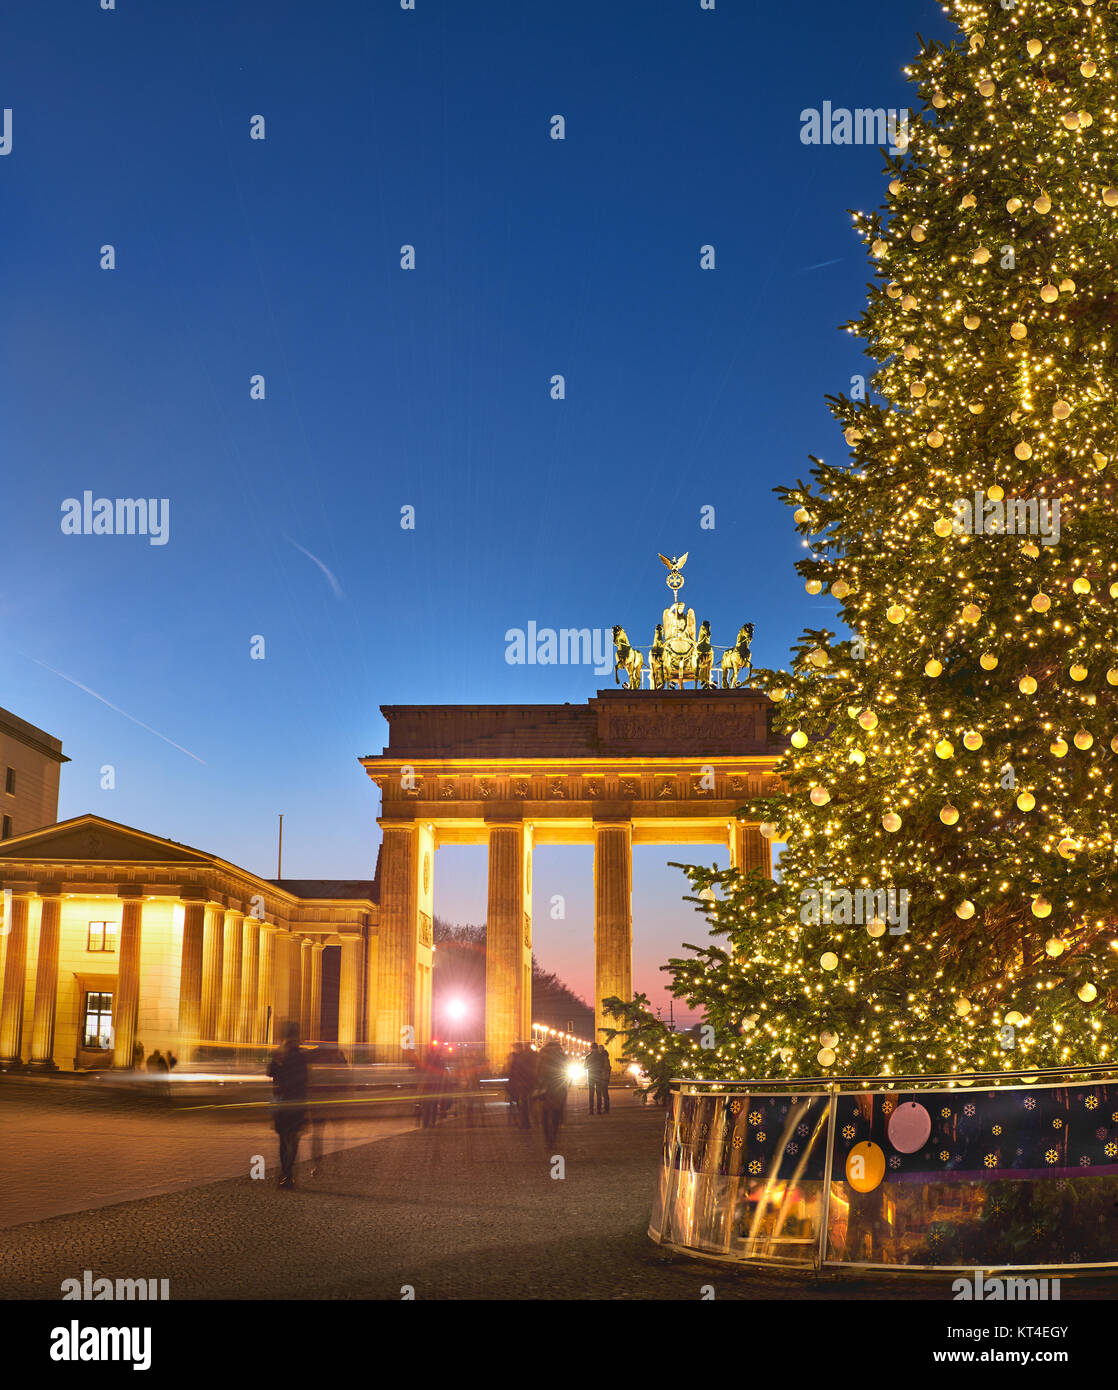 Brandenburger Gate in Berlin with Christmas tree at night with evening illumination, panoramic image - Stock Image